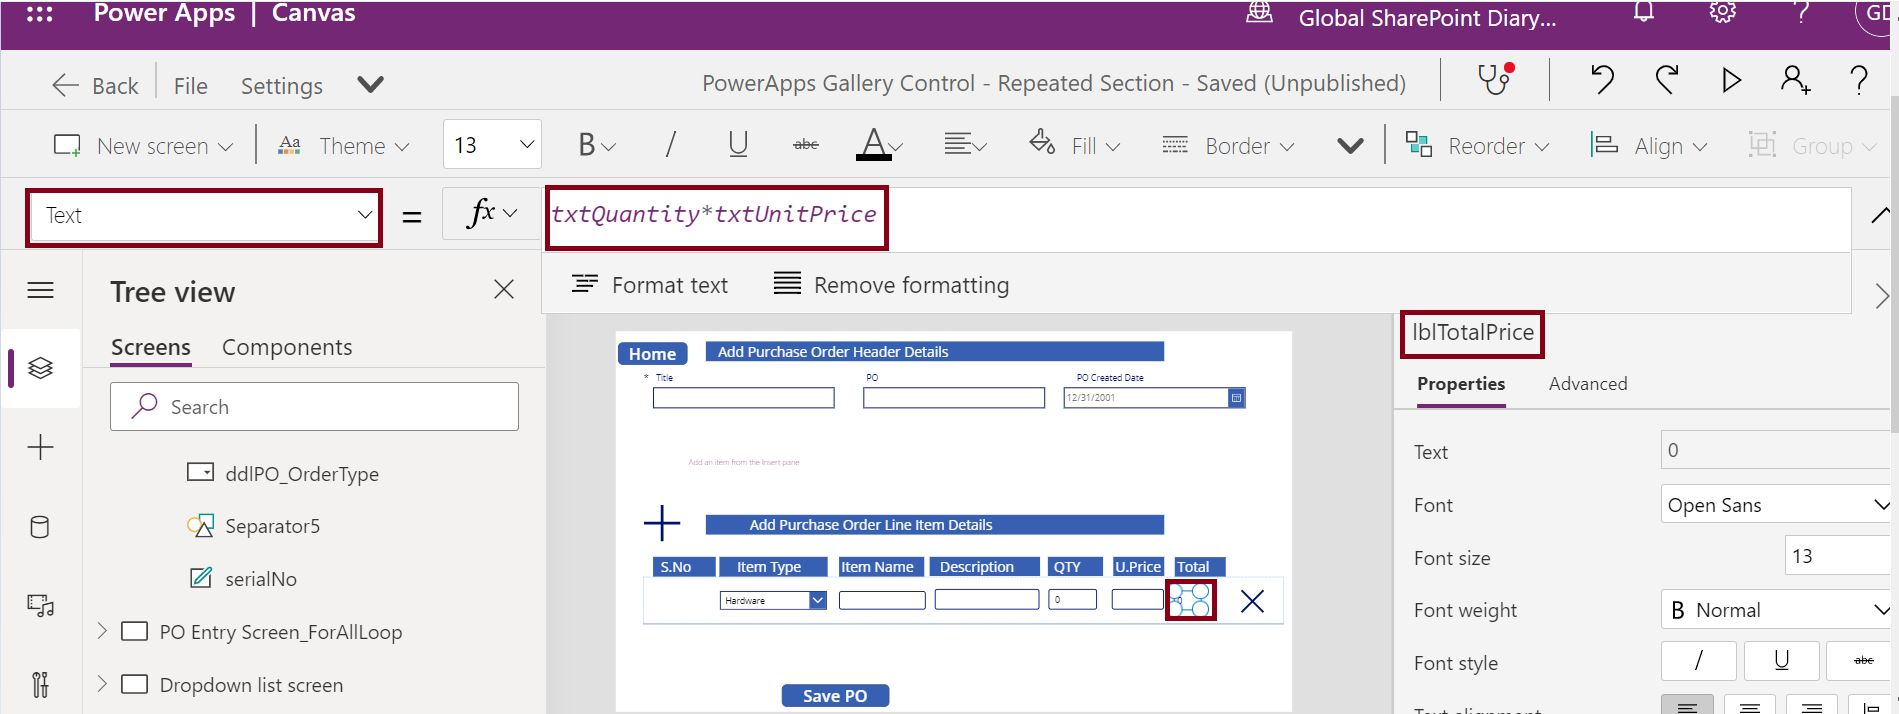 Automatic price calculation in PowerApps Gallery control